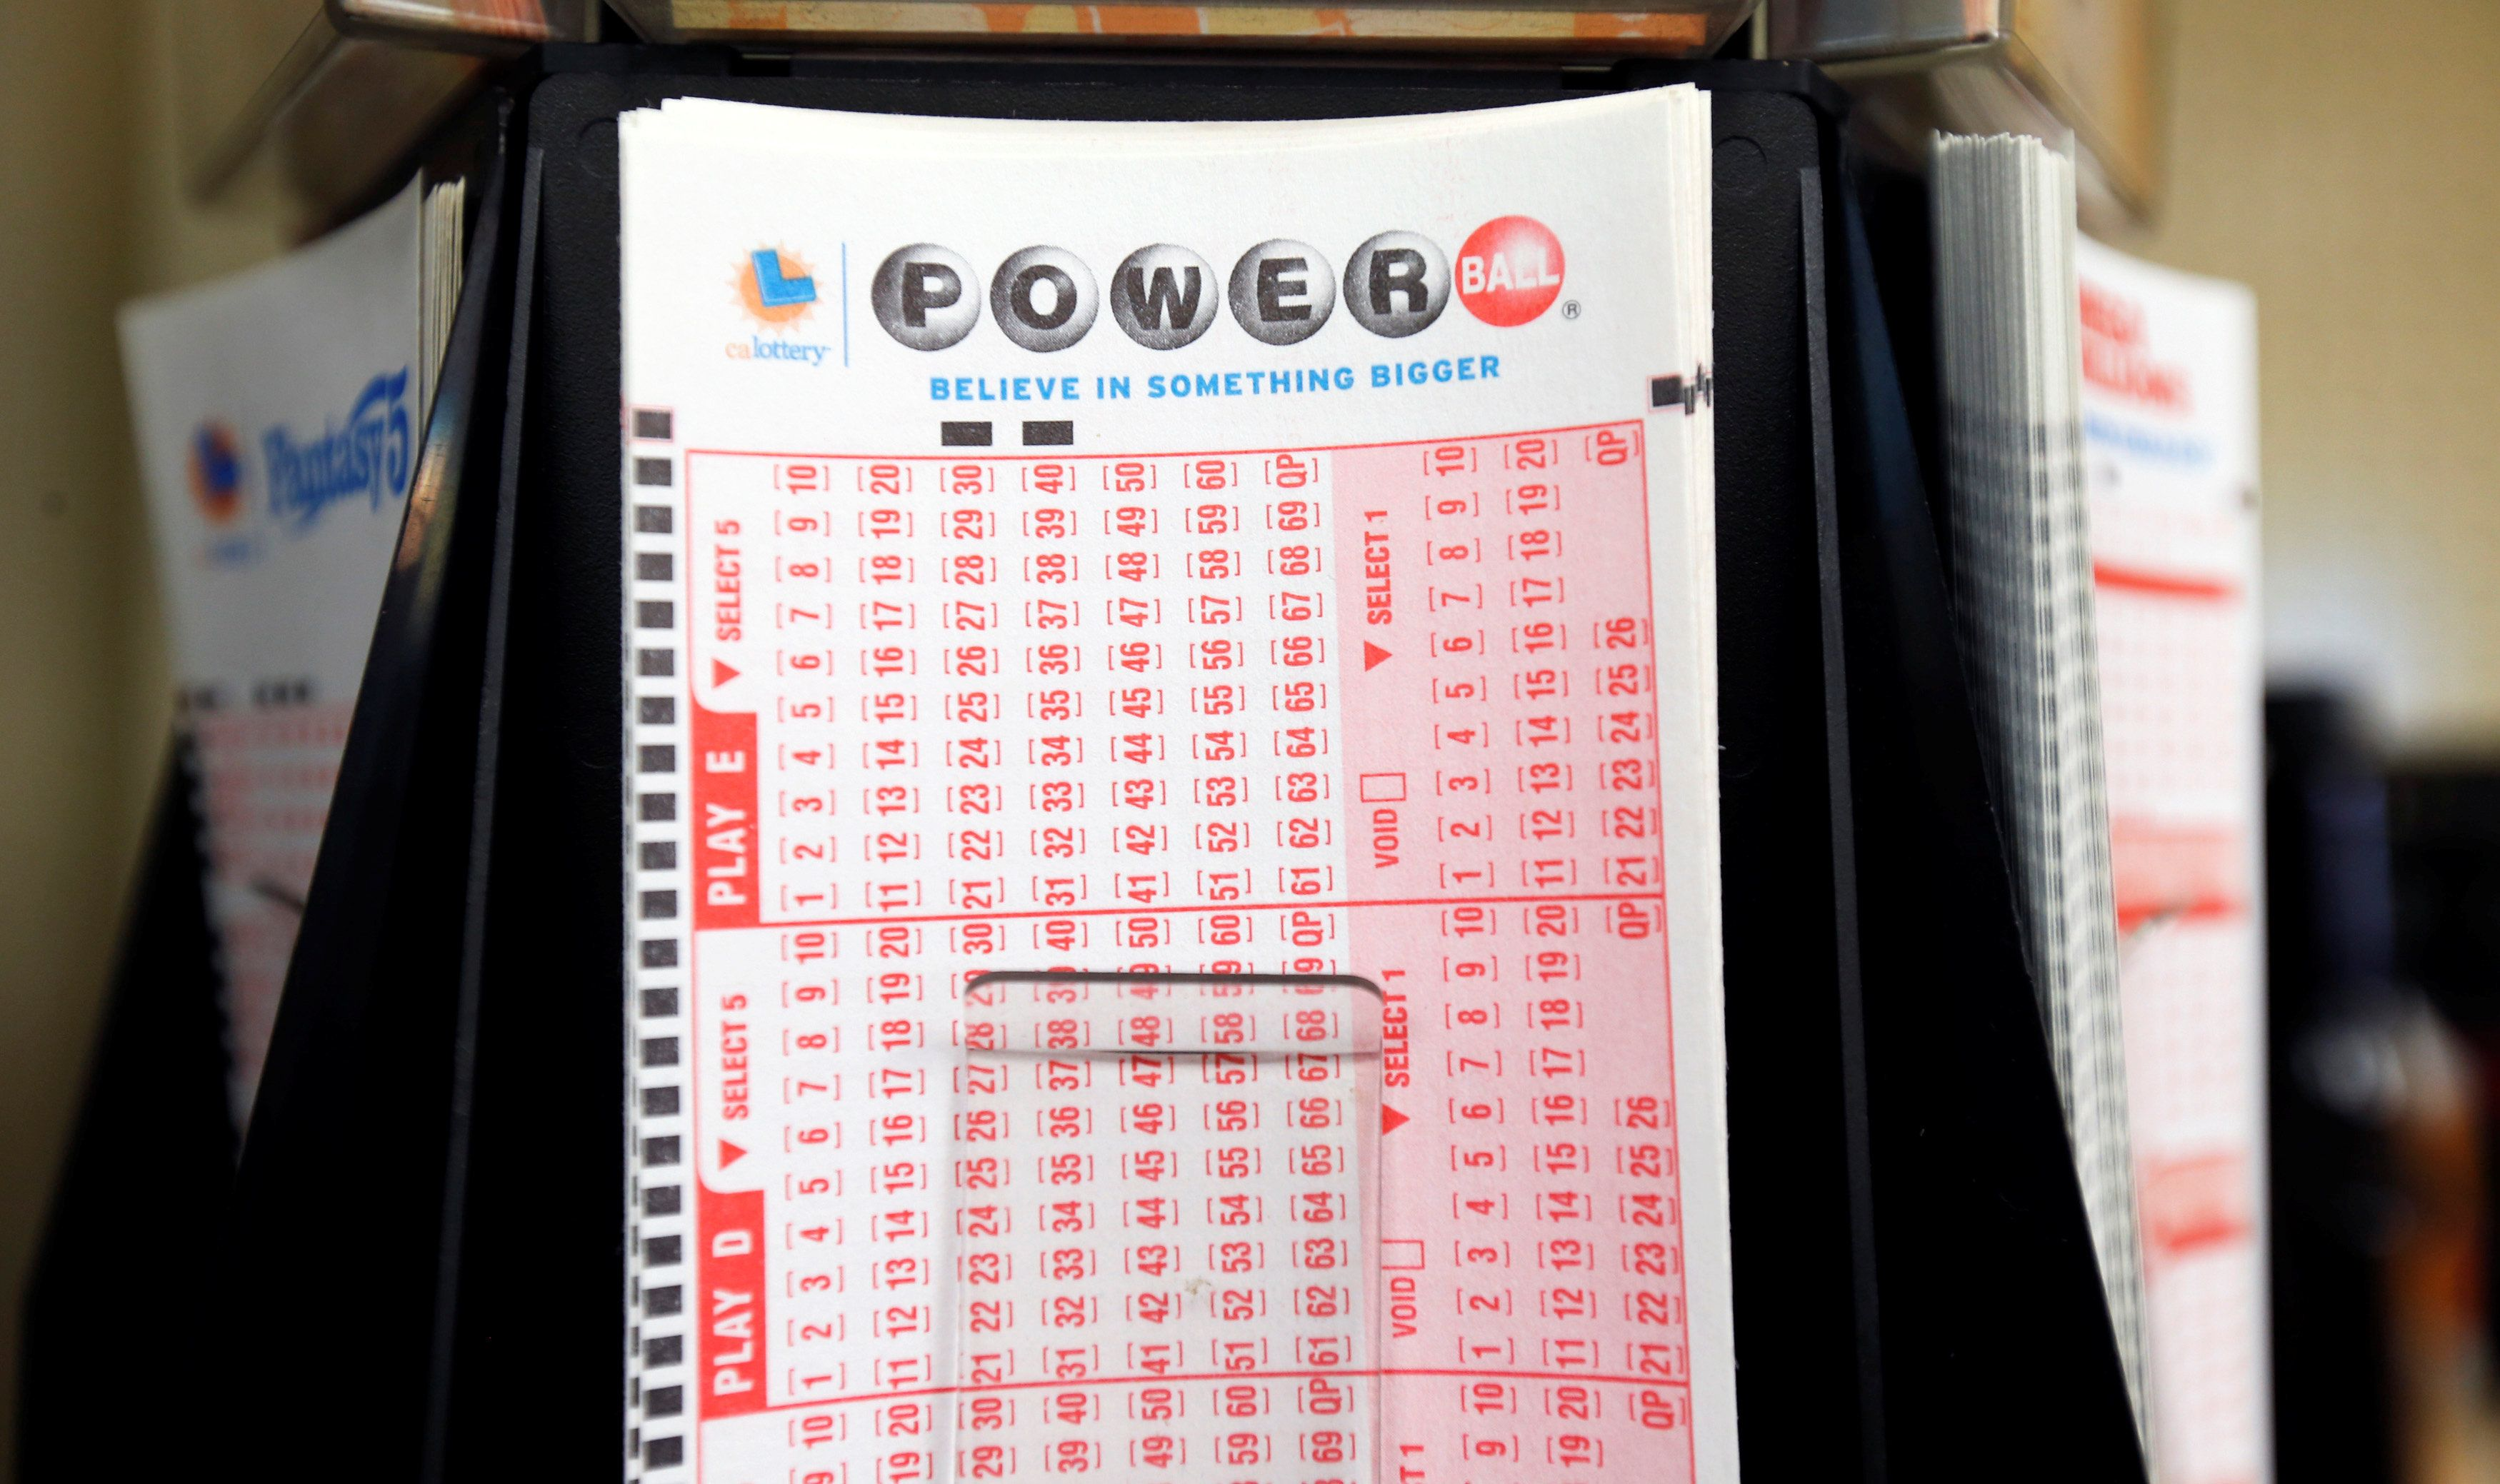 No one won Wednesday's Powerball drawing. The jackpot is now $403 million.